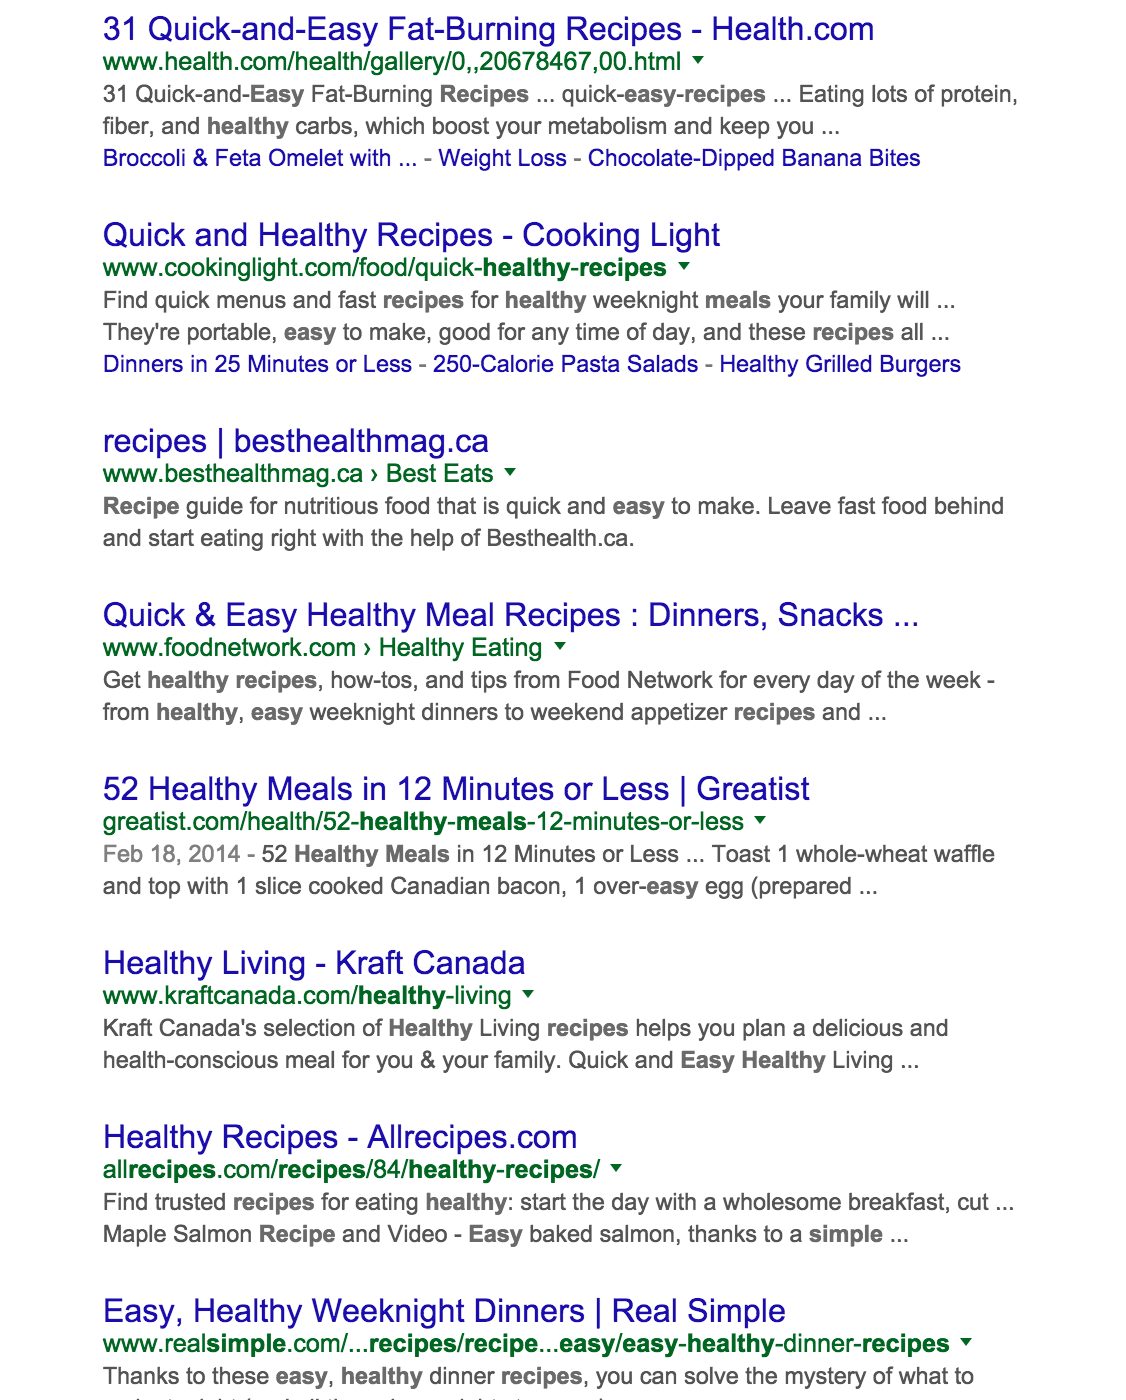 Screenshot showing the headlines on a google search result